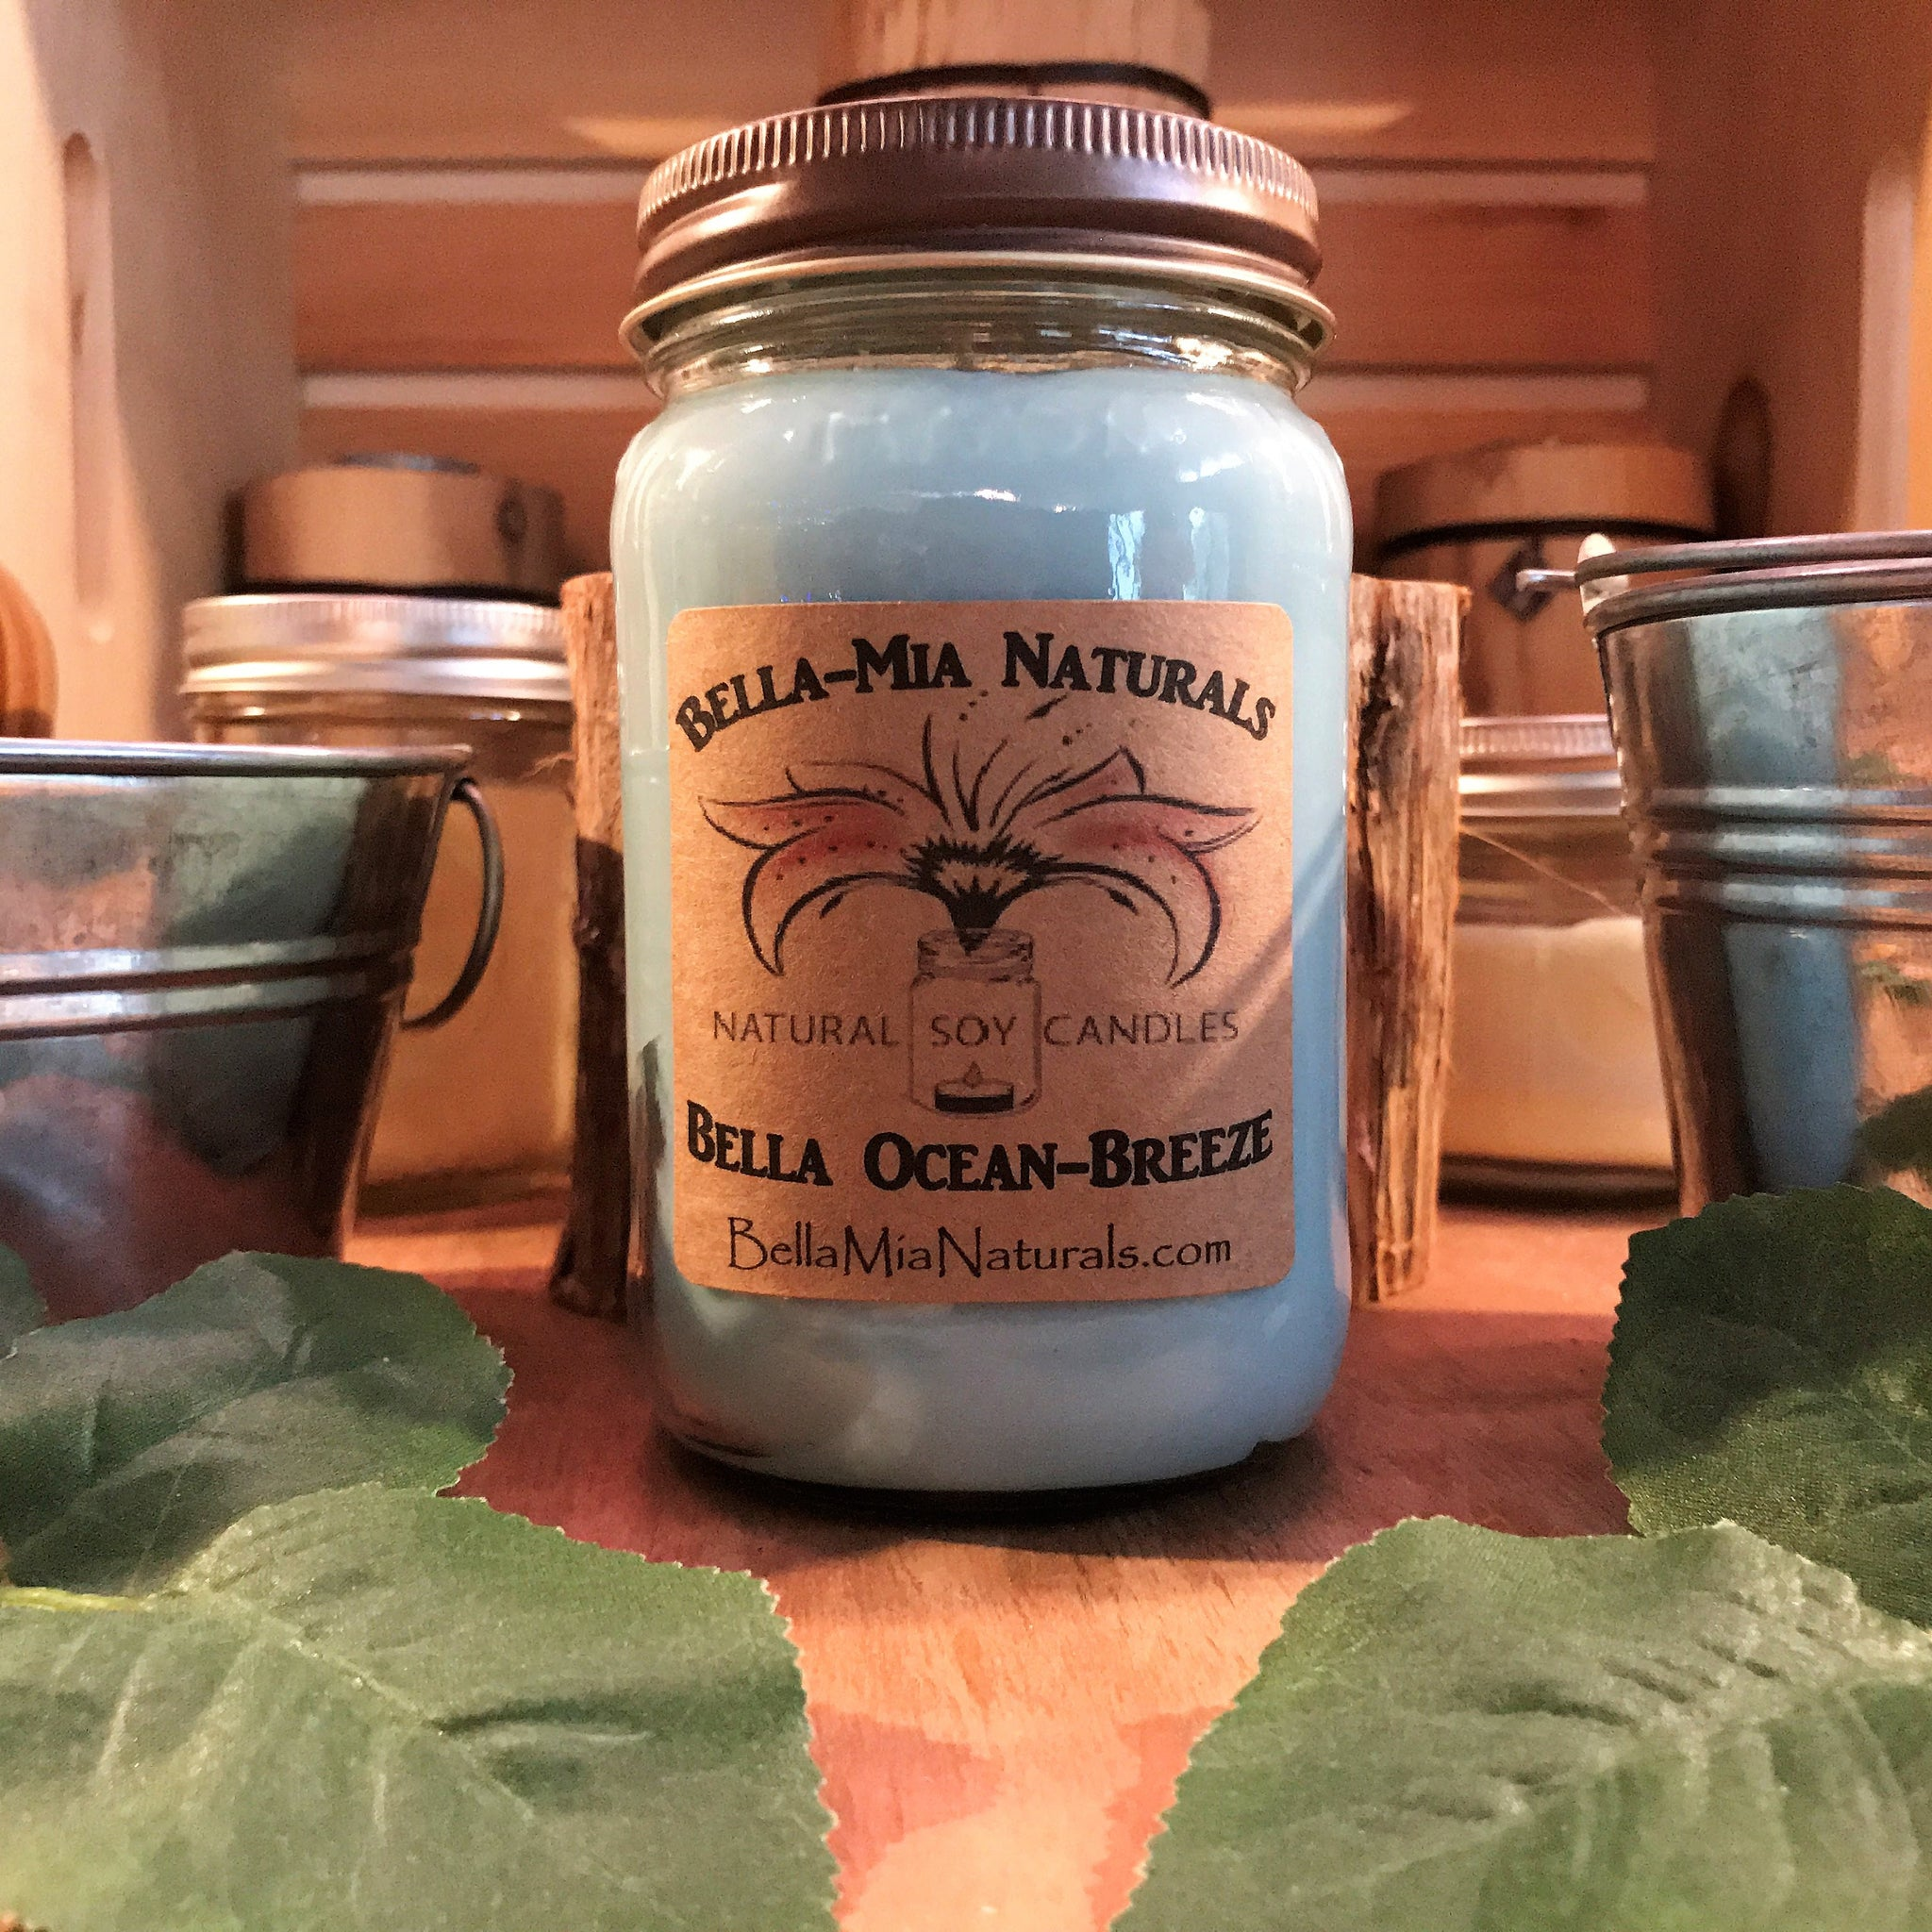 Bella Ocean-Breeze Natural Hand Poured Soy Candles